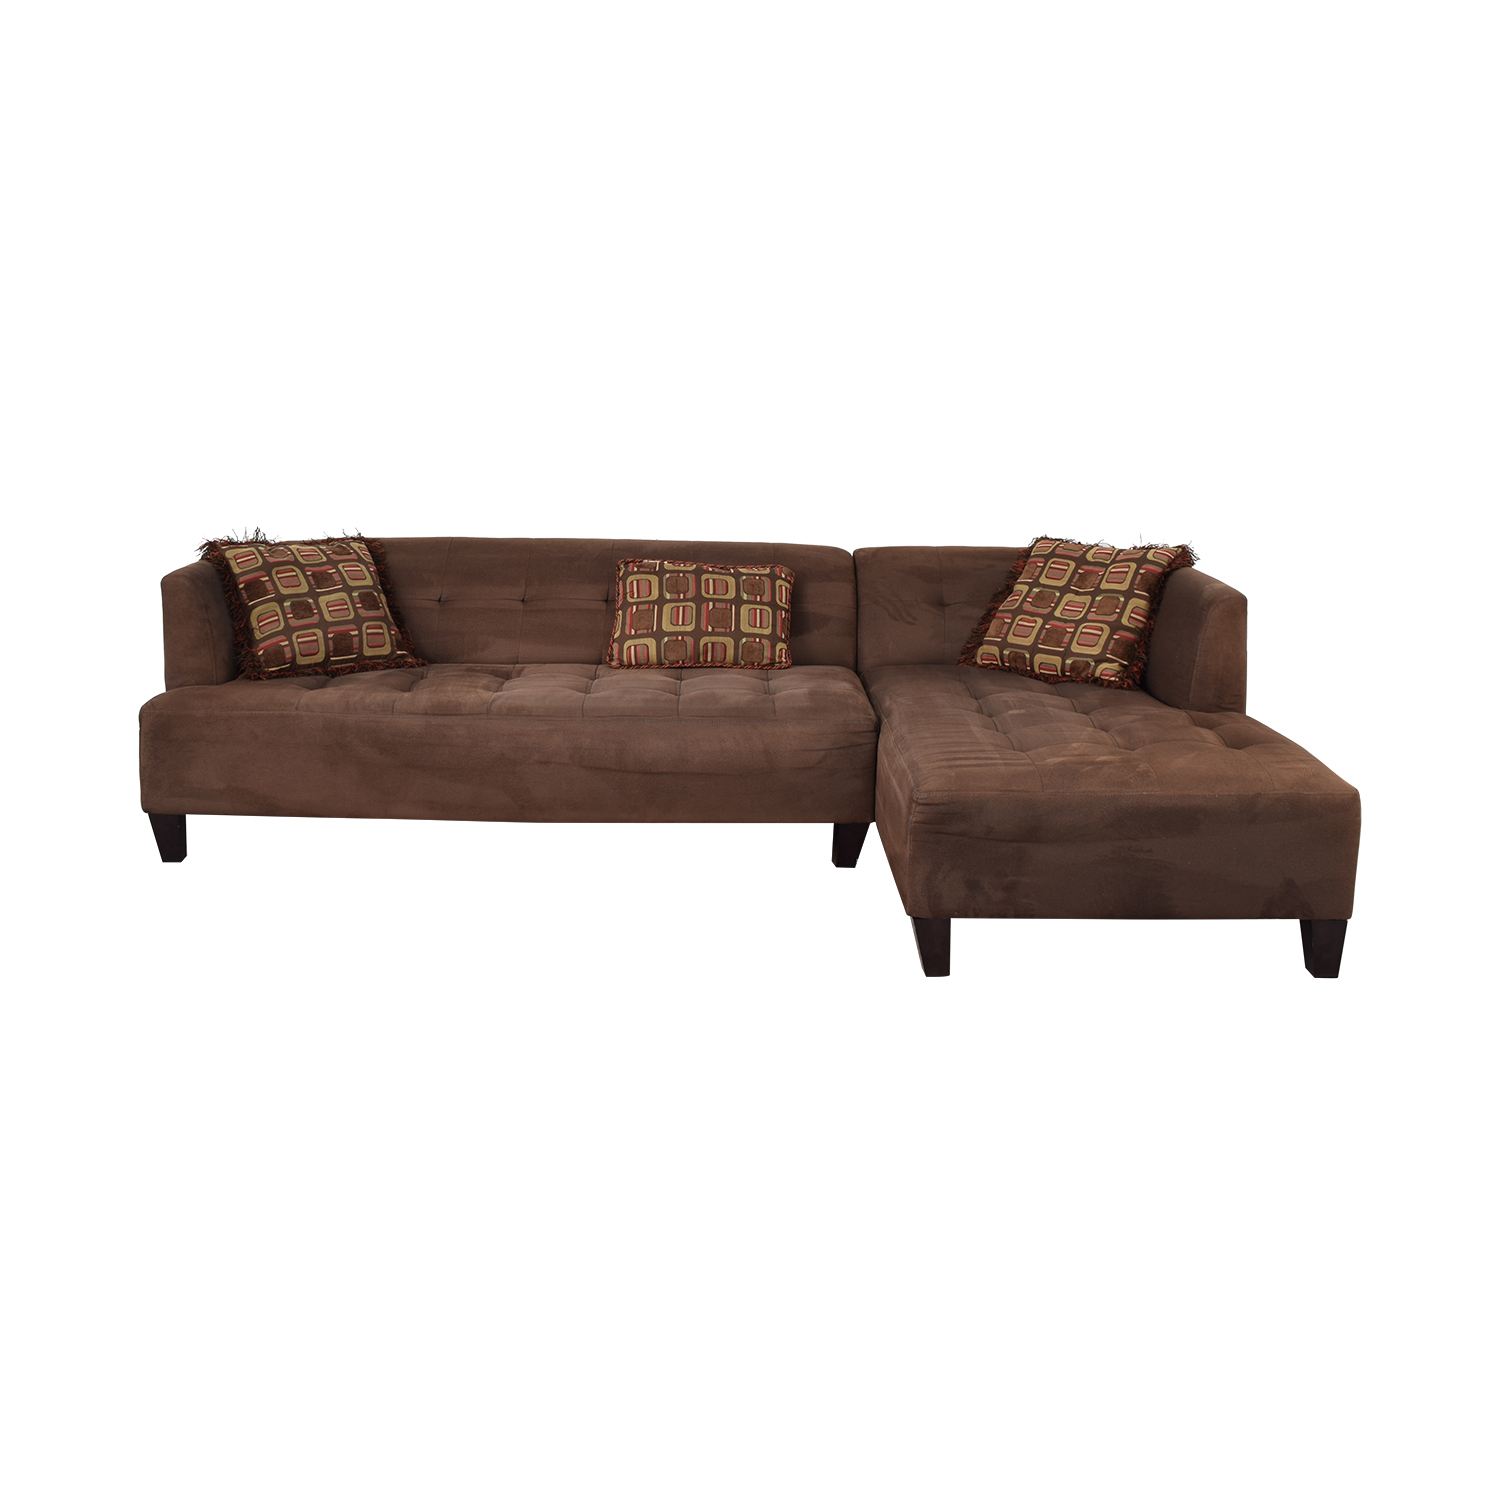 Macy's Macy's Brown Tufted Chaise  Sectional on sale